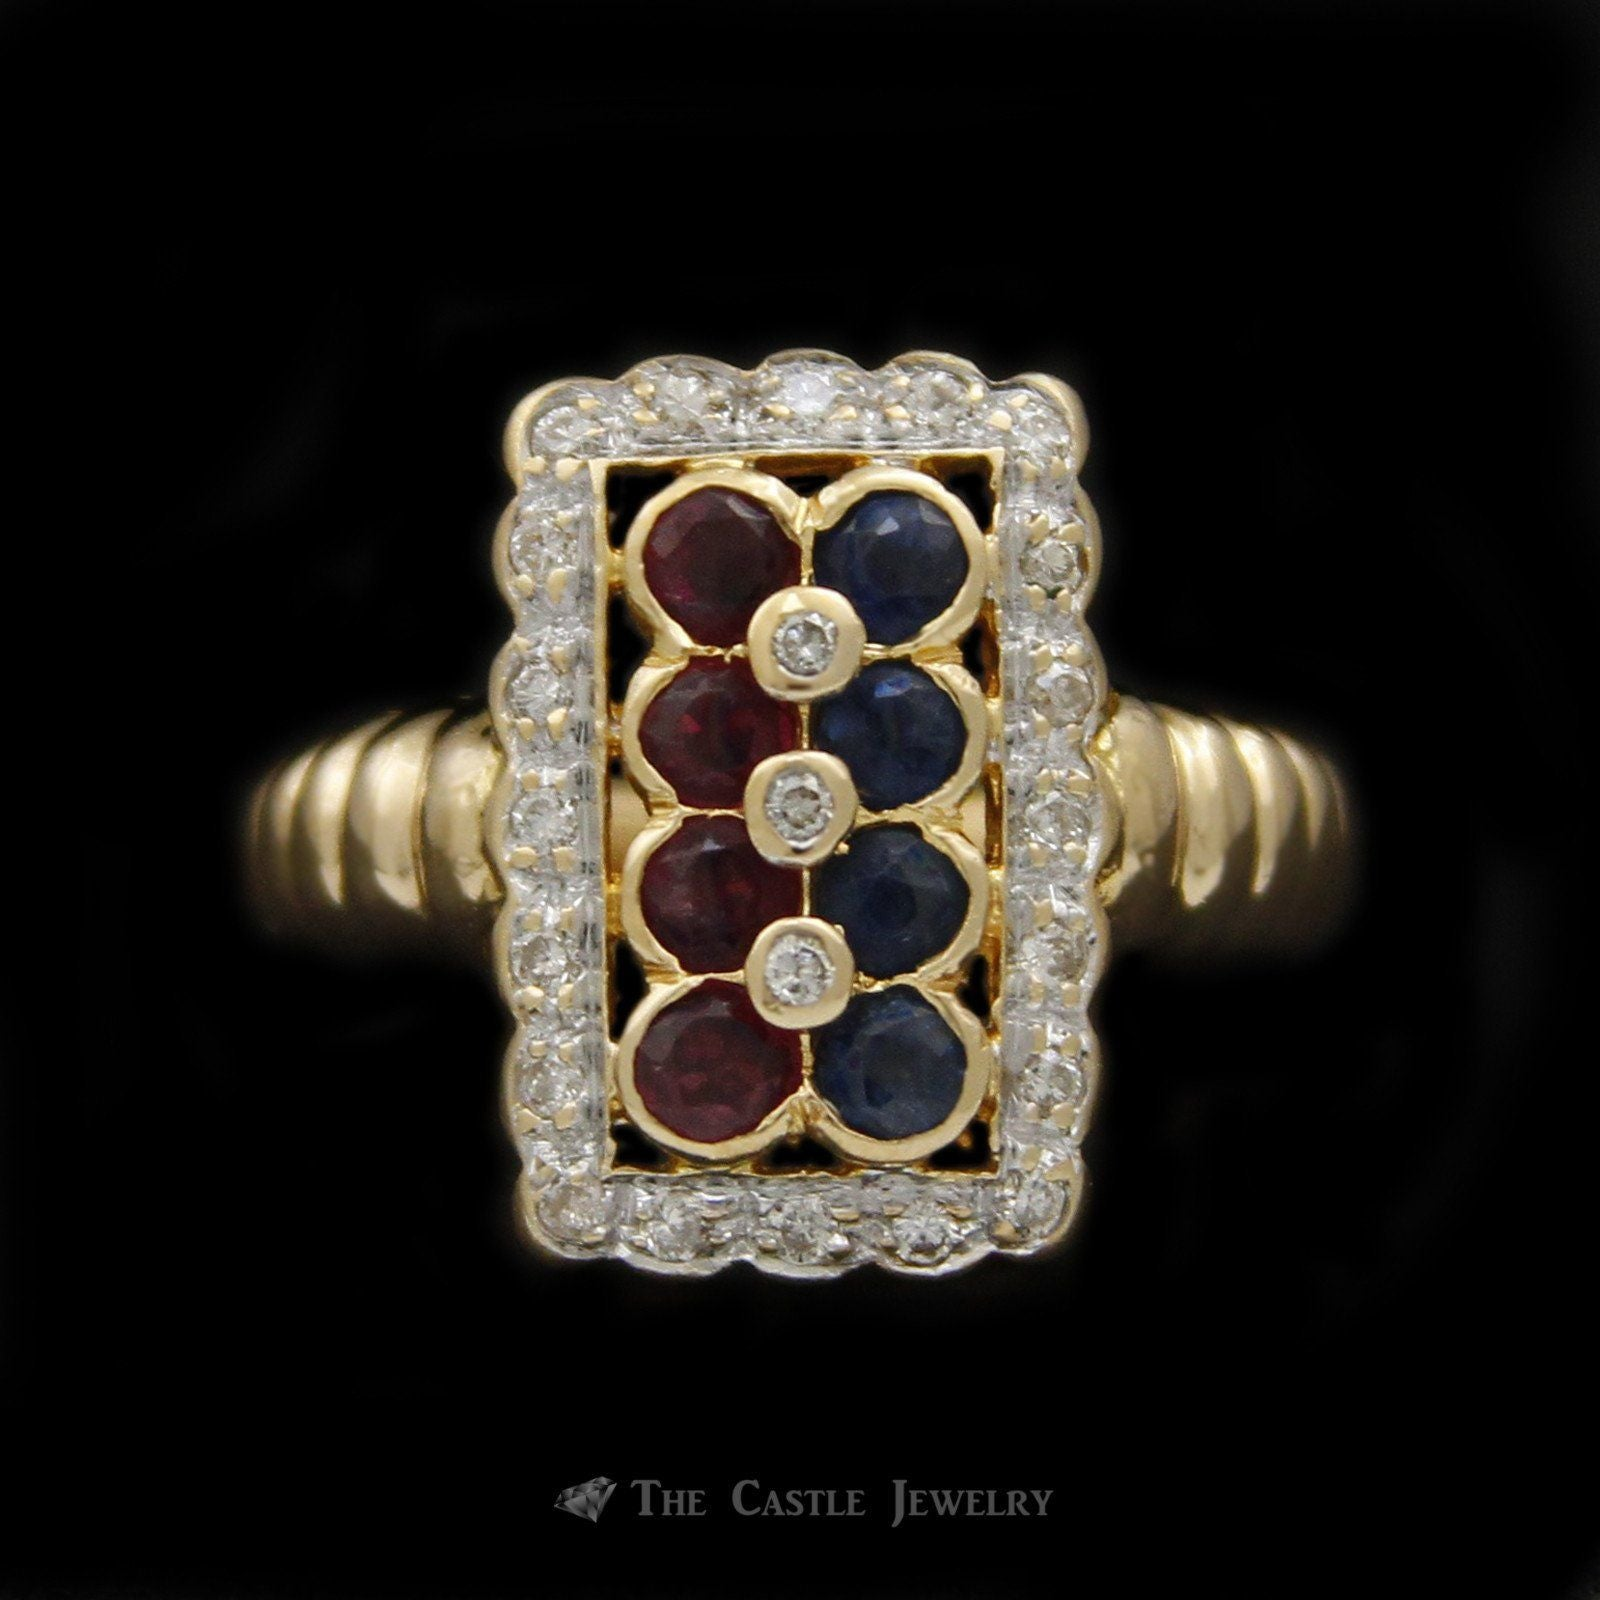 Rectangular Shaped Ruby & Sapphire Ring with Scalloped Design Diamond Bezel in 18K Yellow Gold